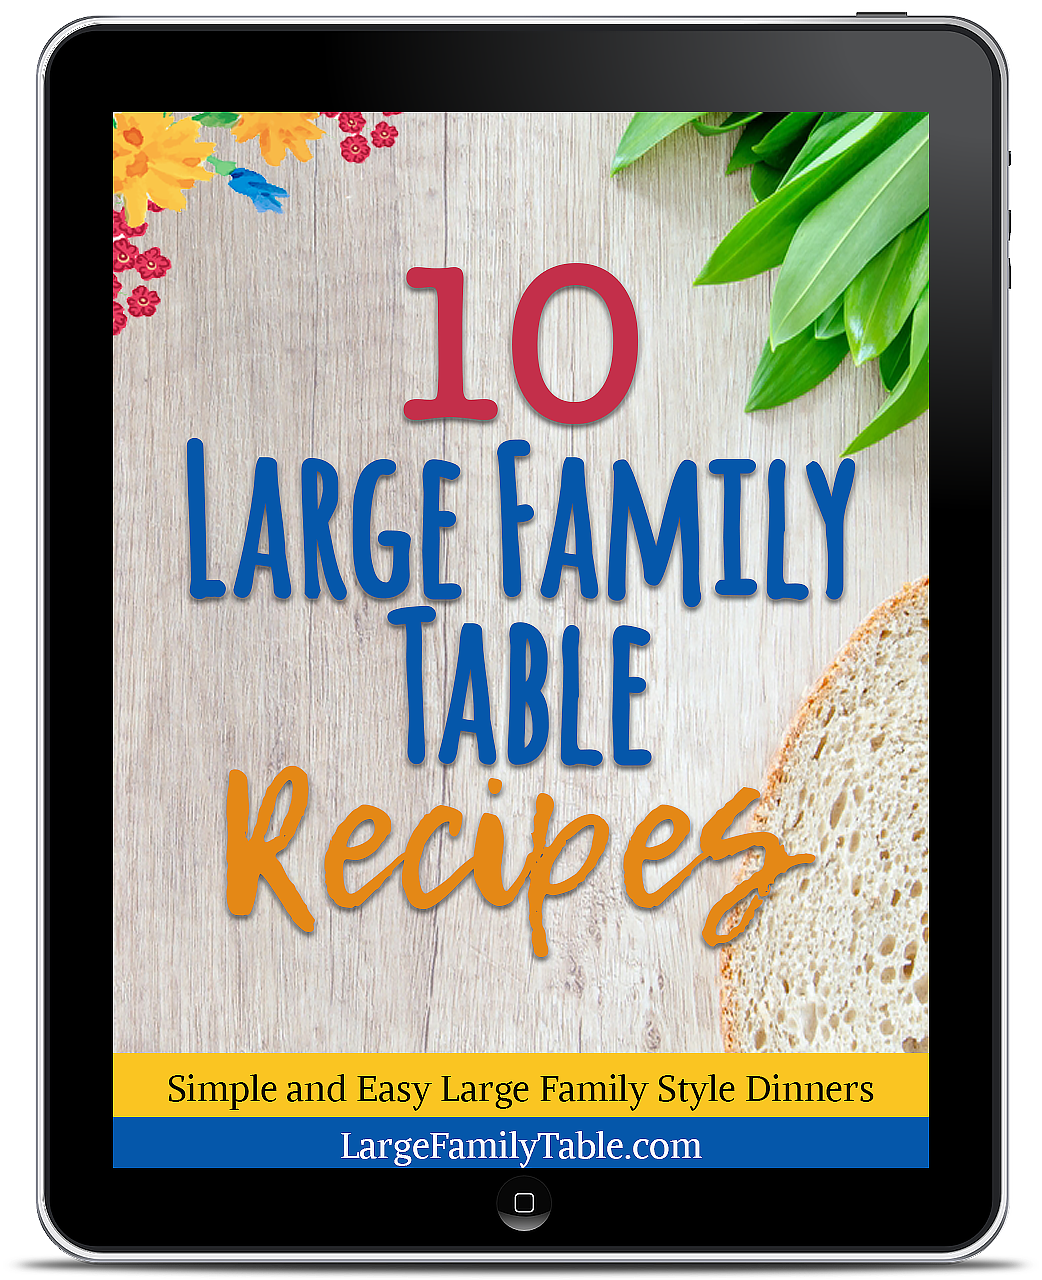 FREE 10 Large Family Table Recipes: Simple and Easy Large Family Style Dinners